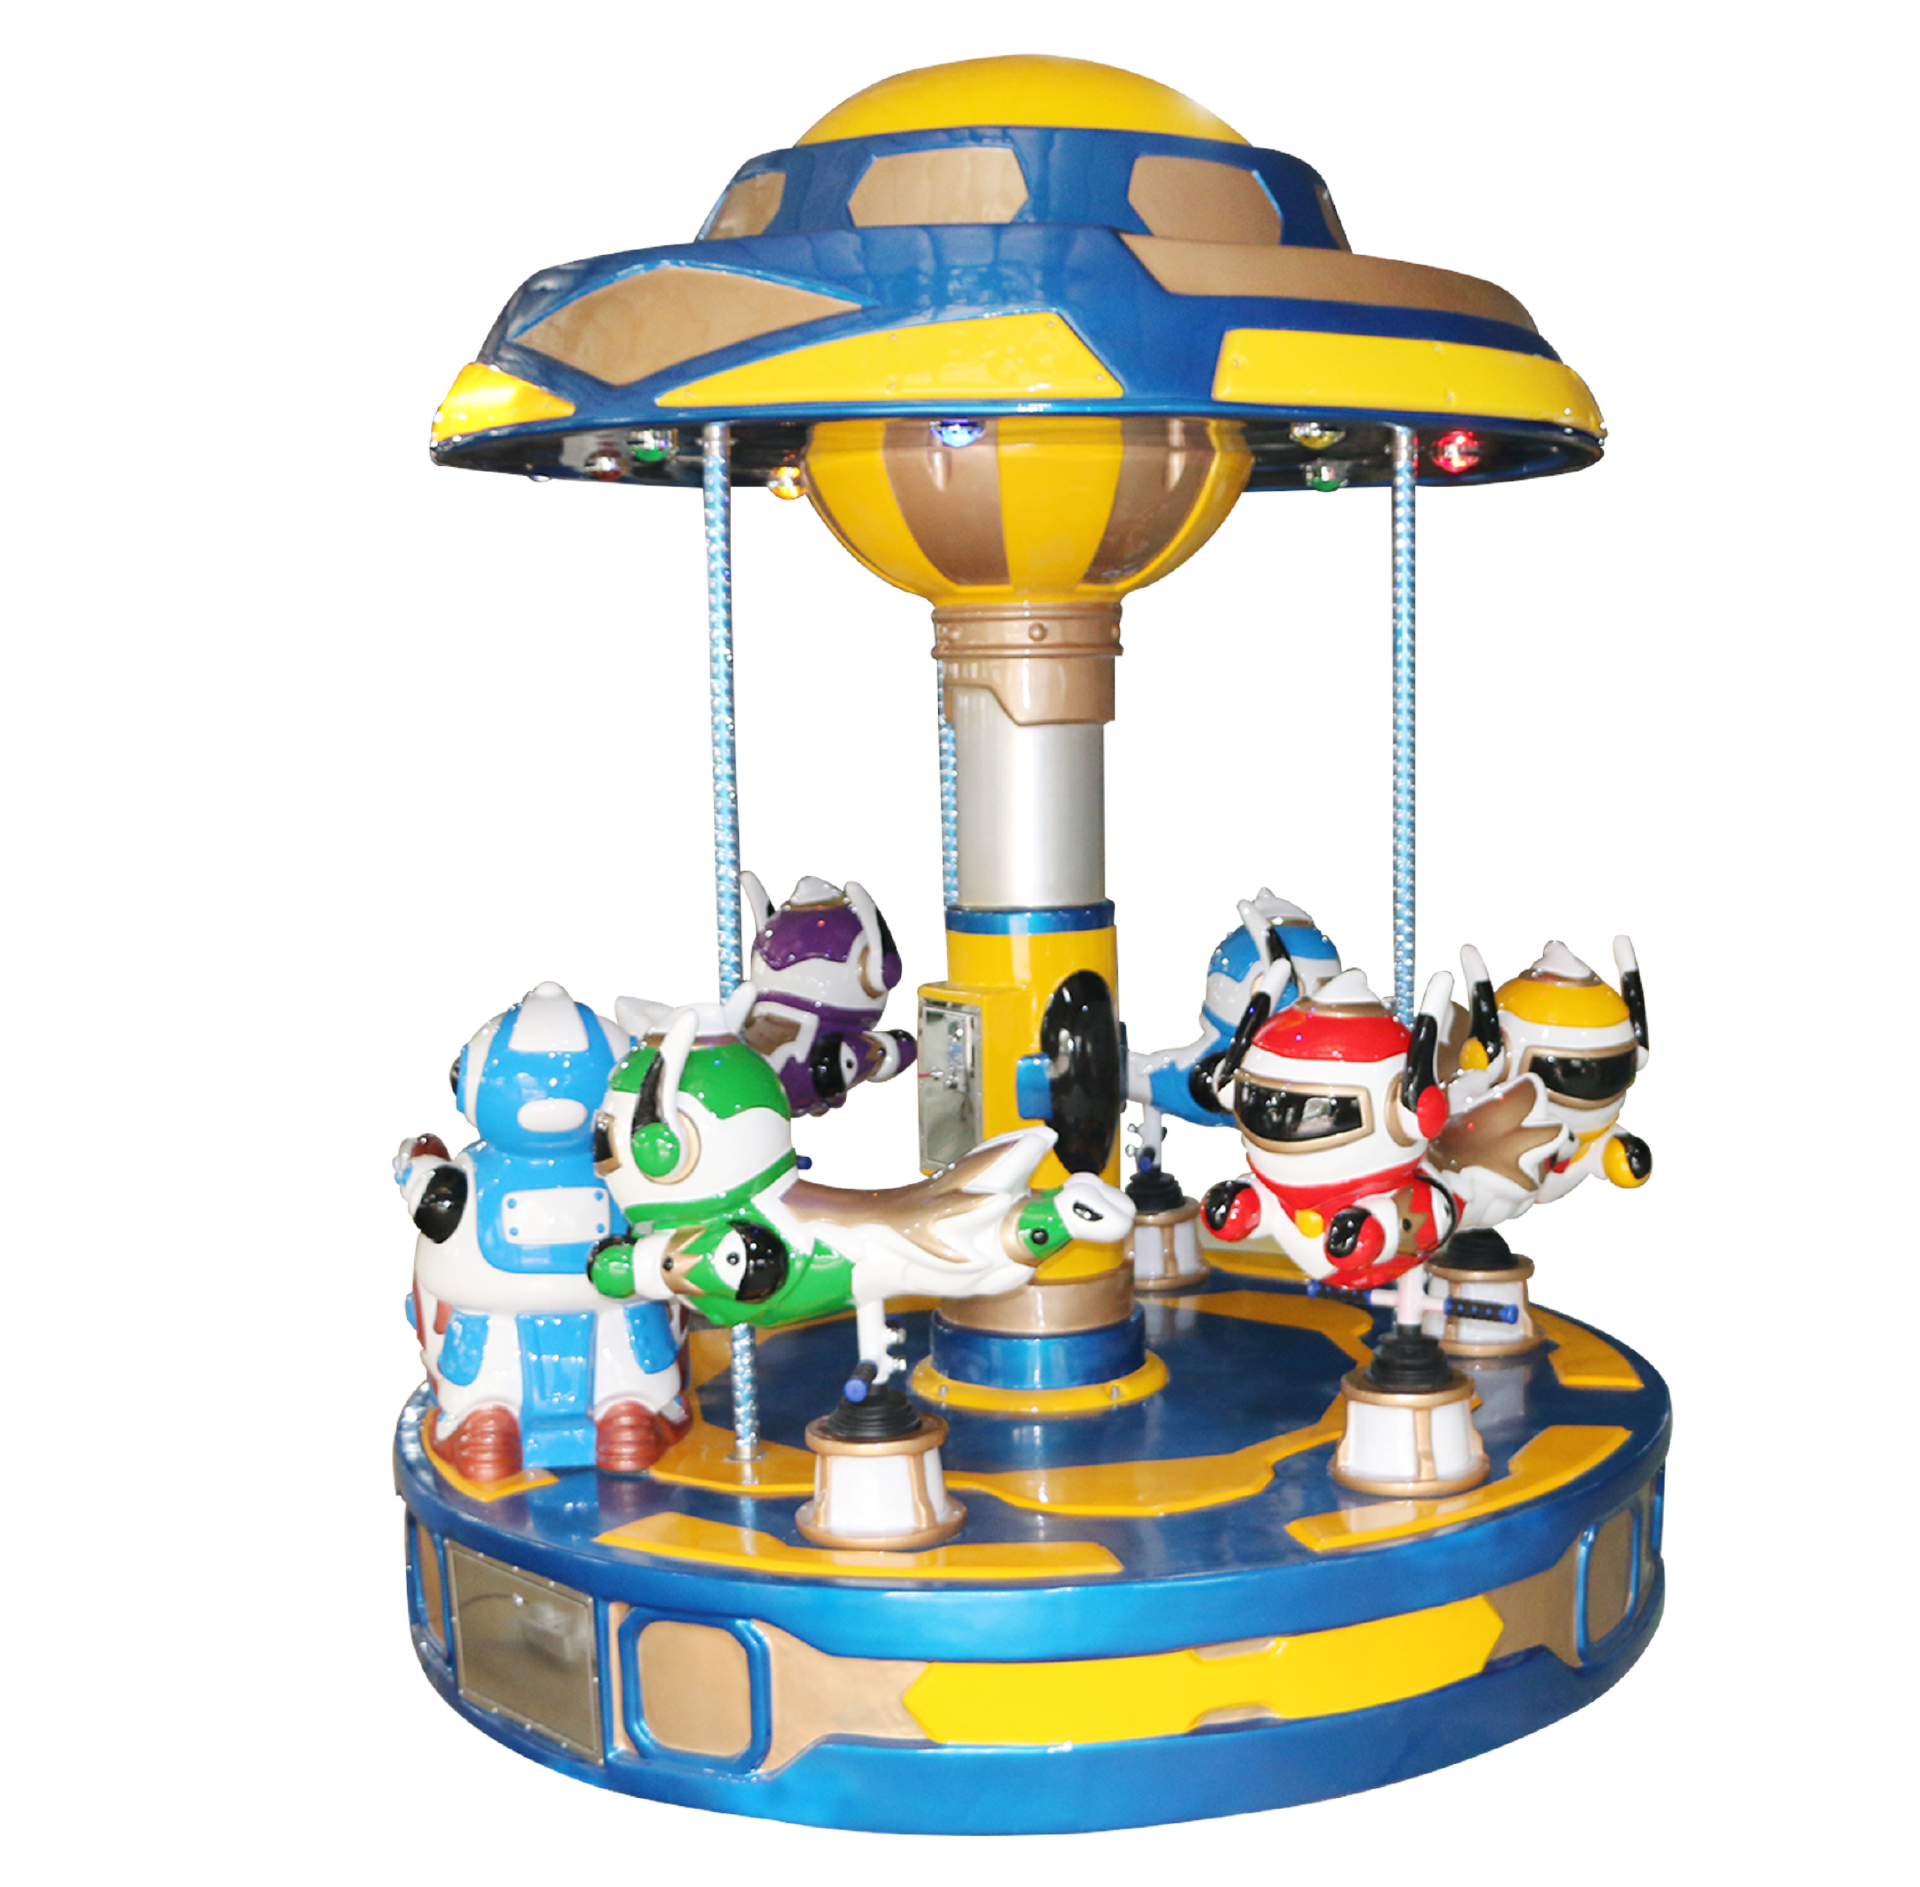 Space Carousel